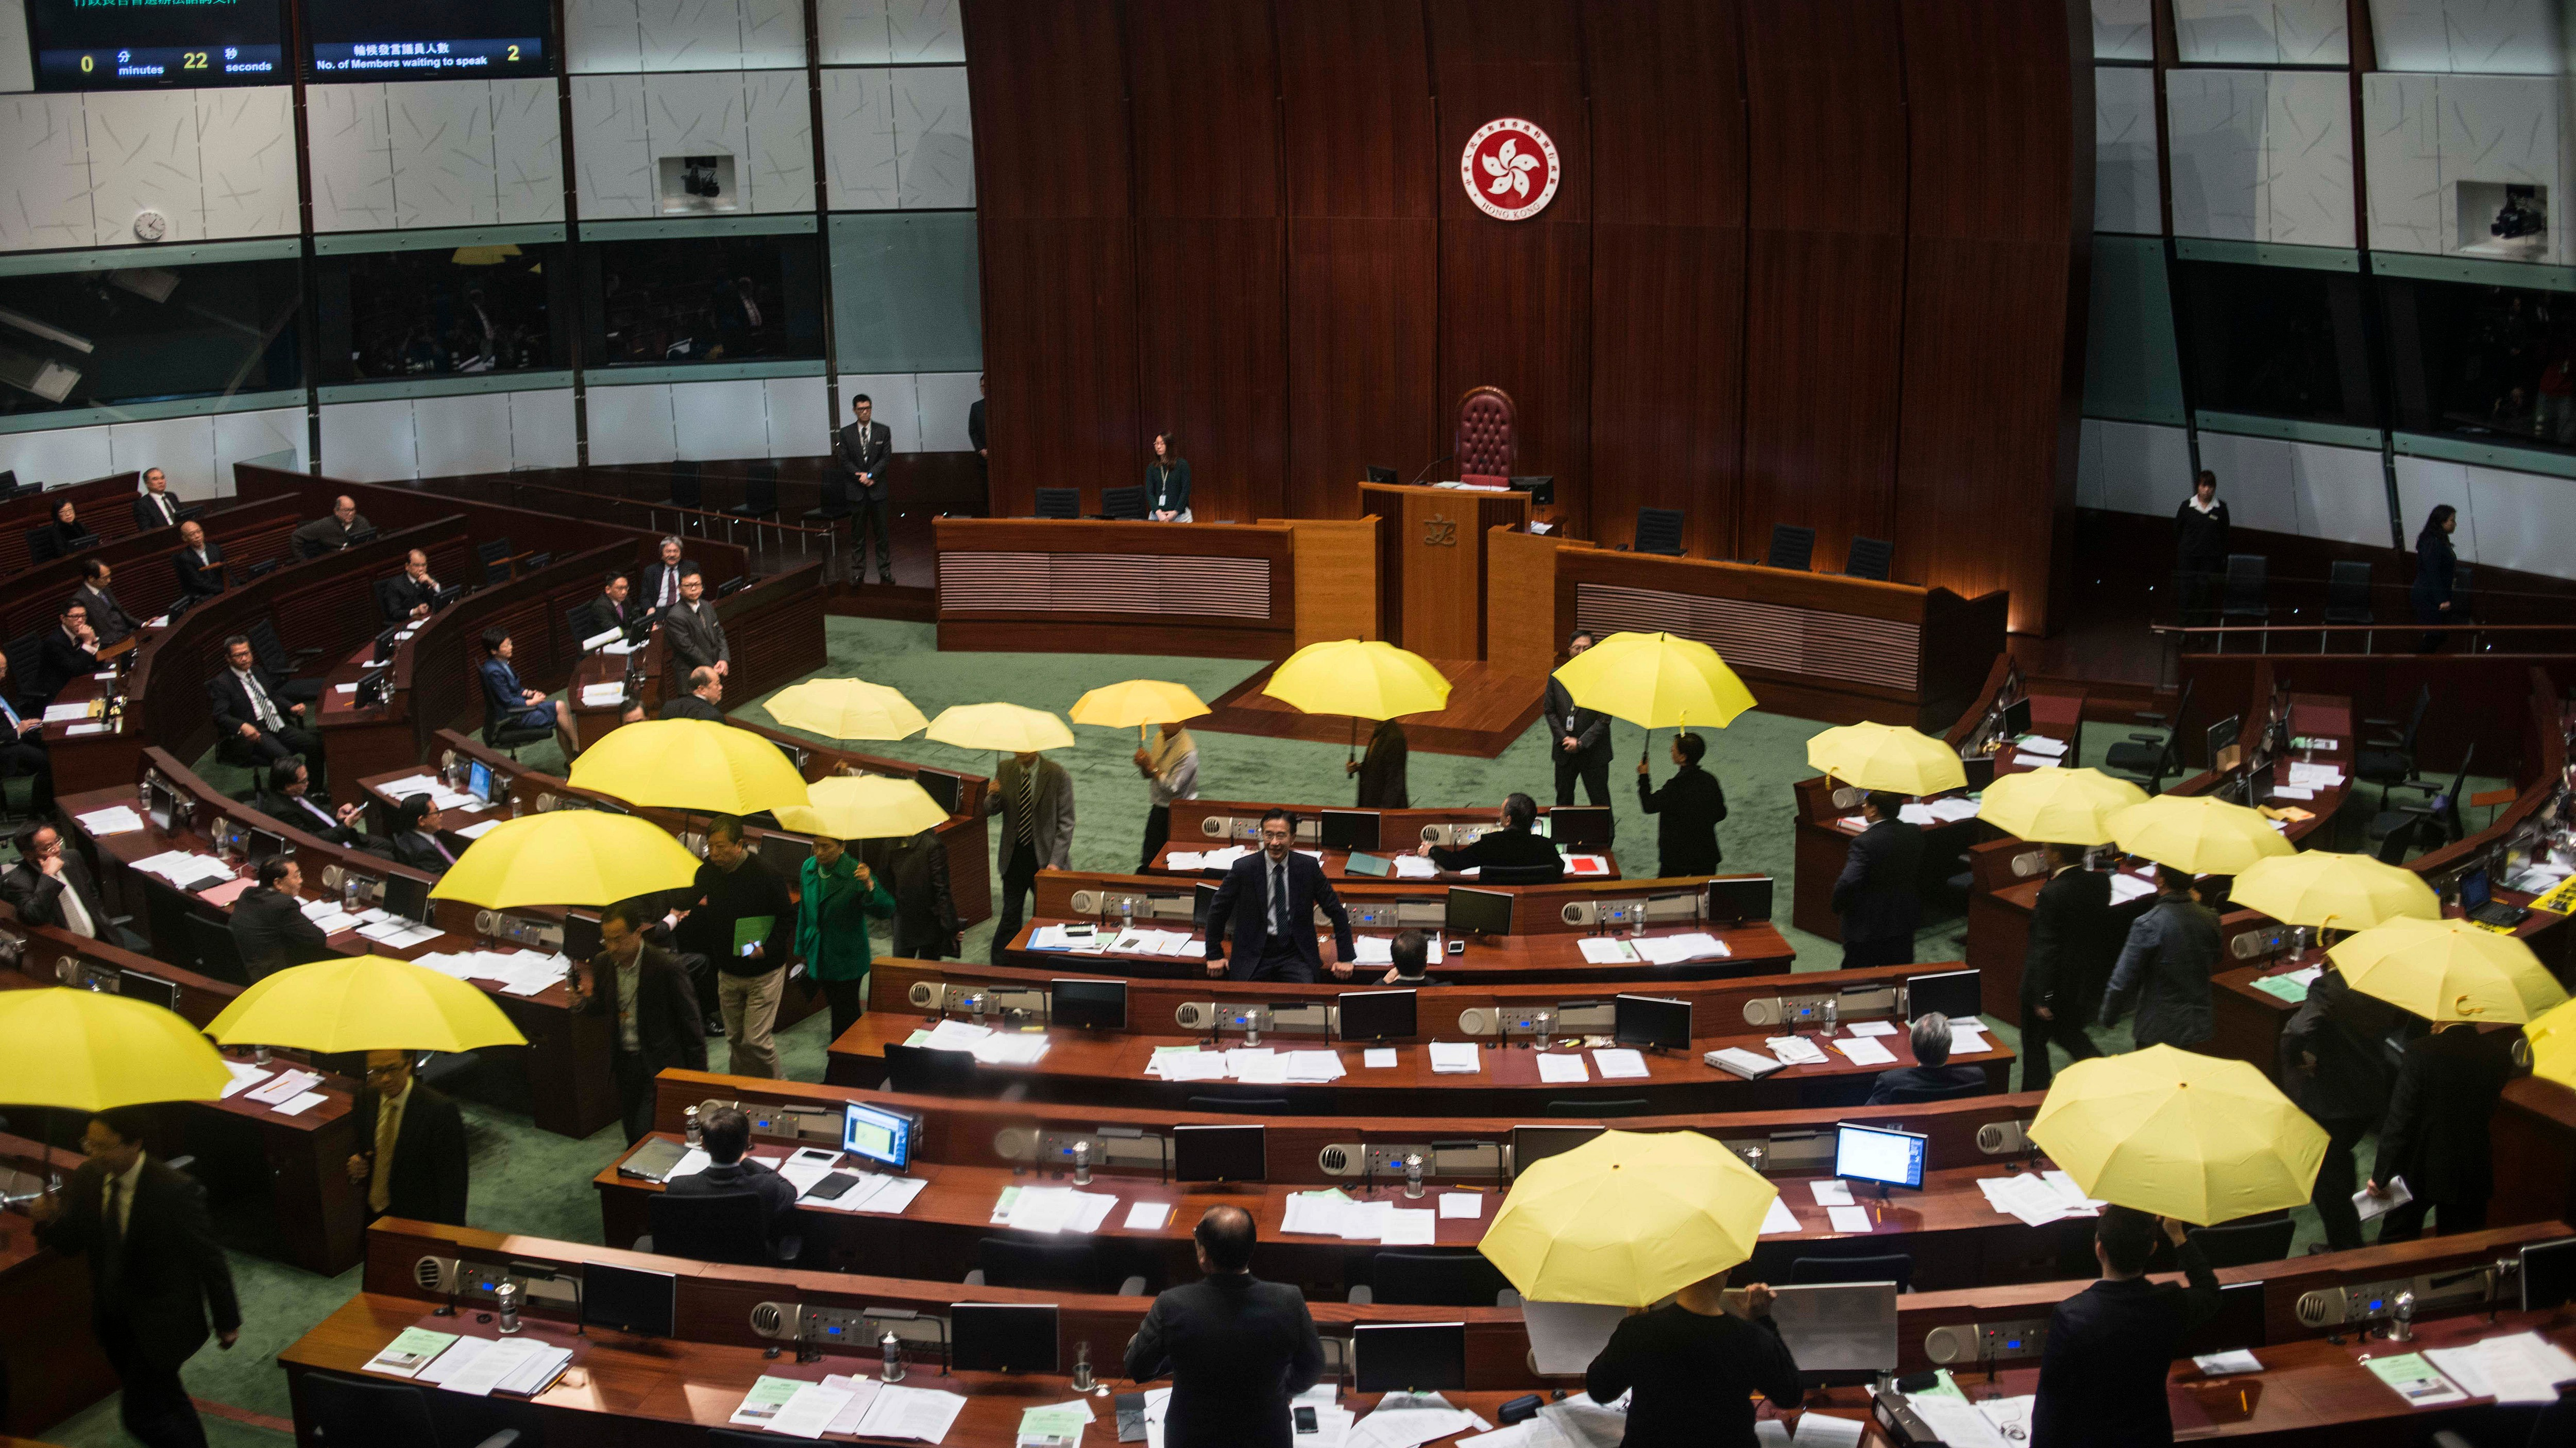 Video Shows Pro-Democracy Legislators Staging Yellow Umbrella Walkout in Hong Kong